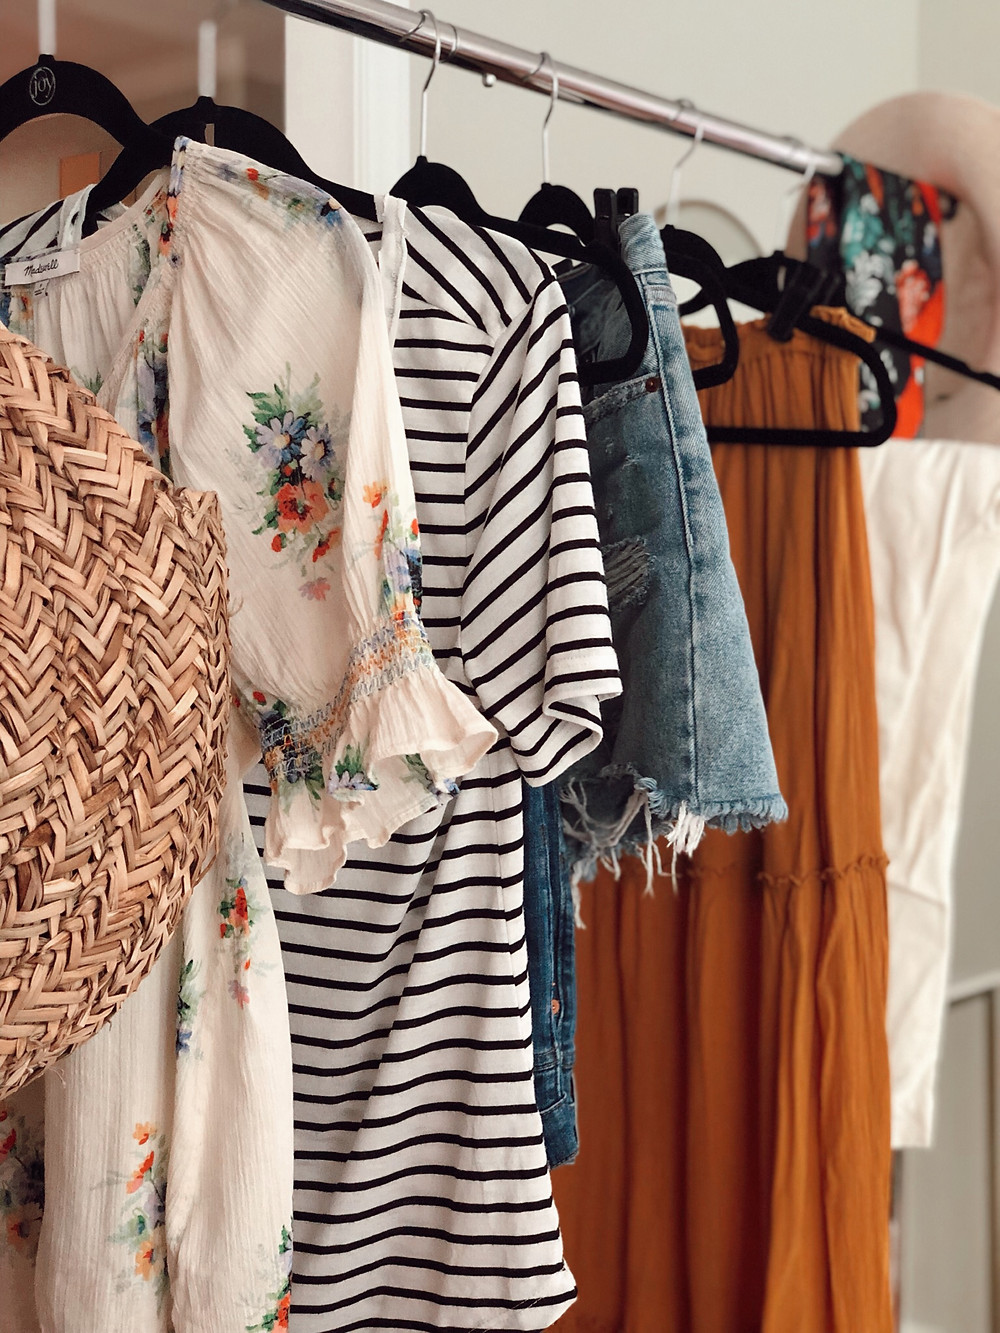 Summer clothing hangs from rolling rack